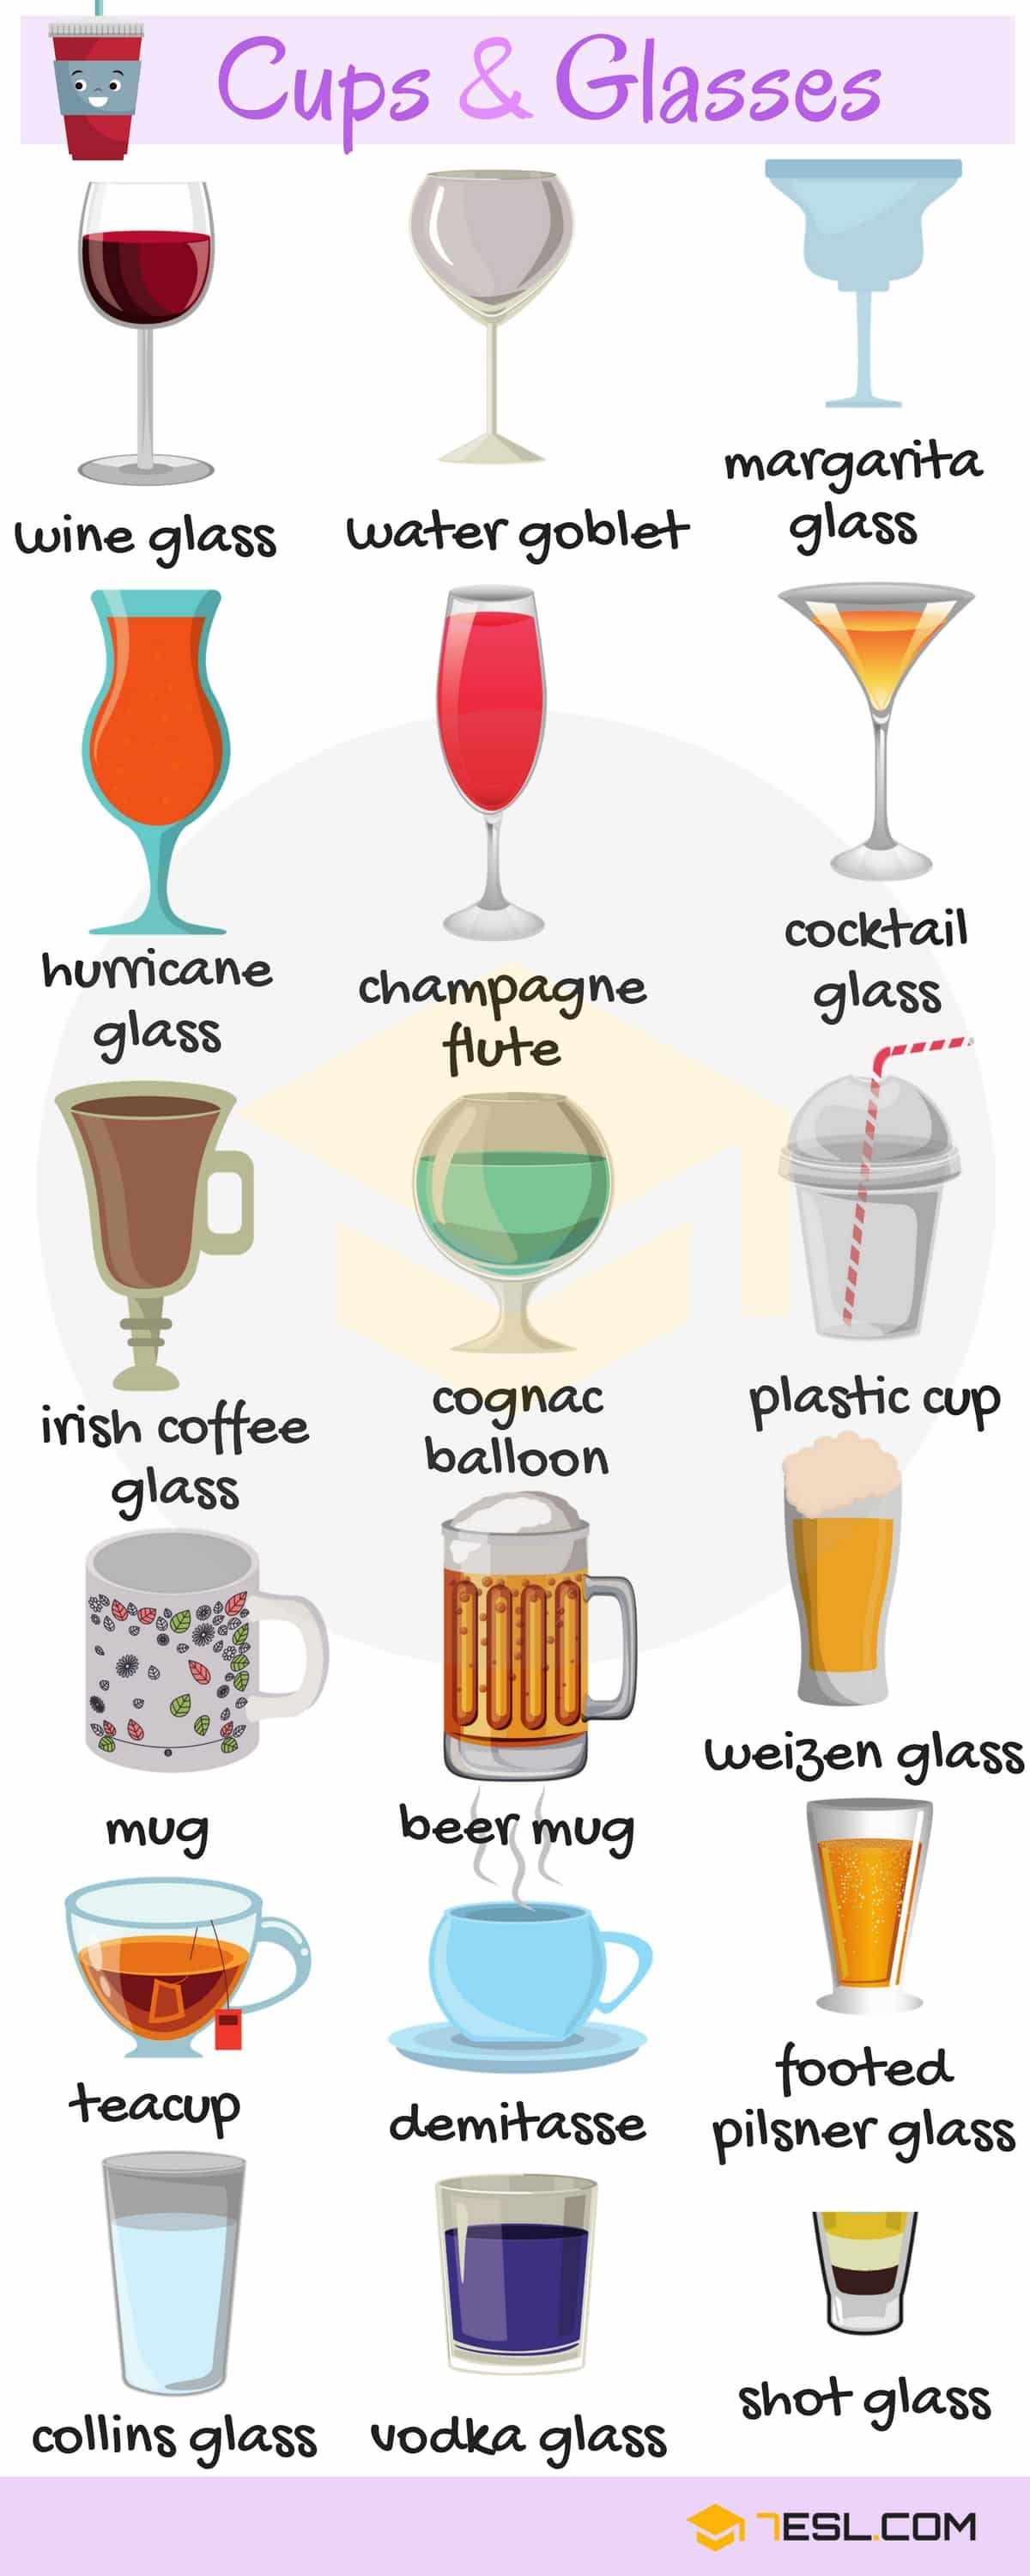 Cups and Glasses in English | Image